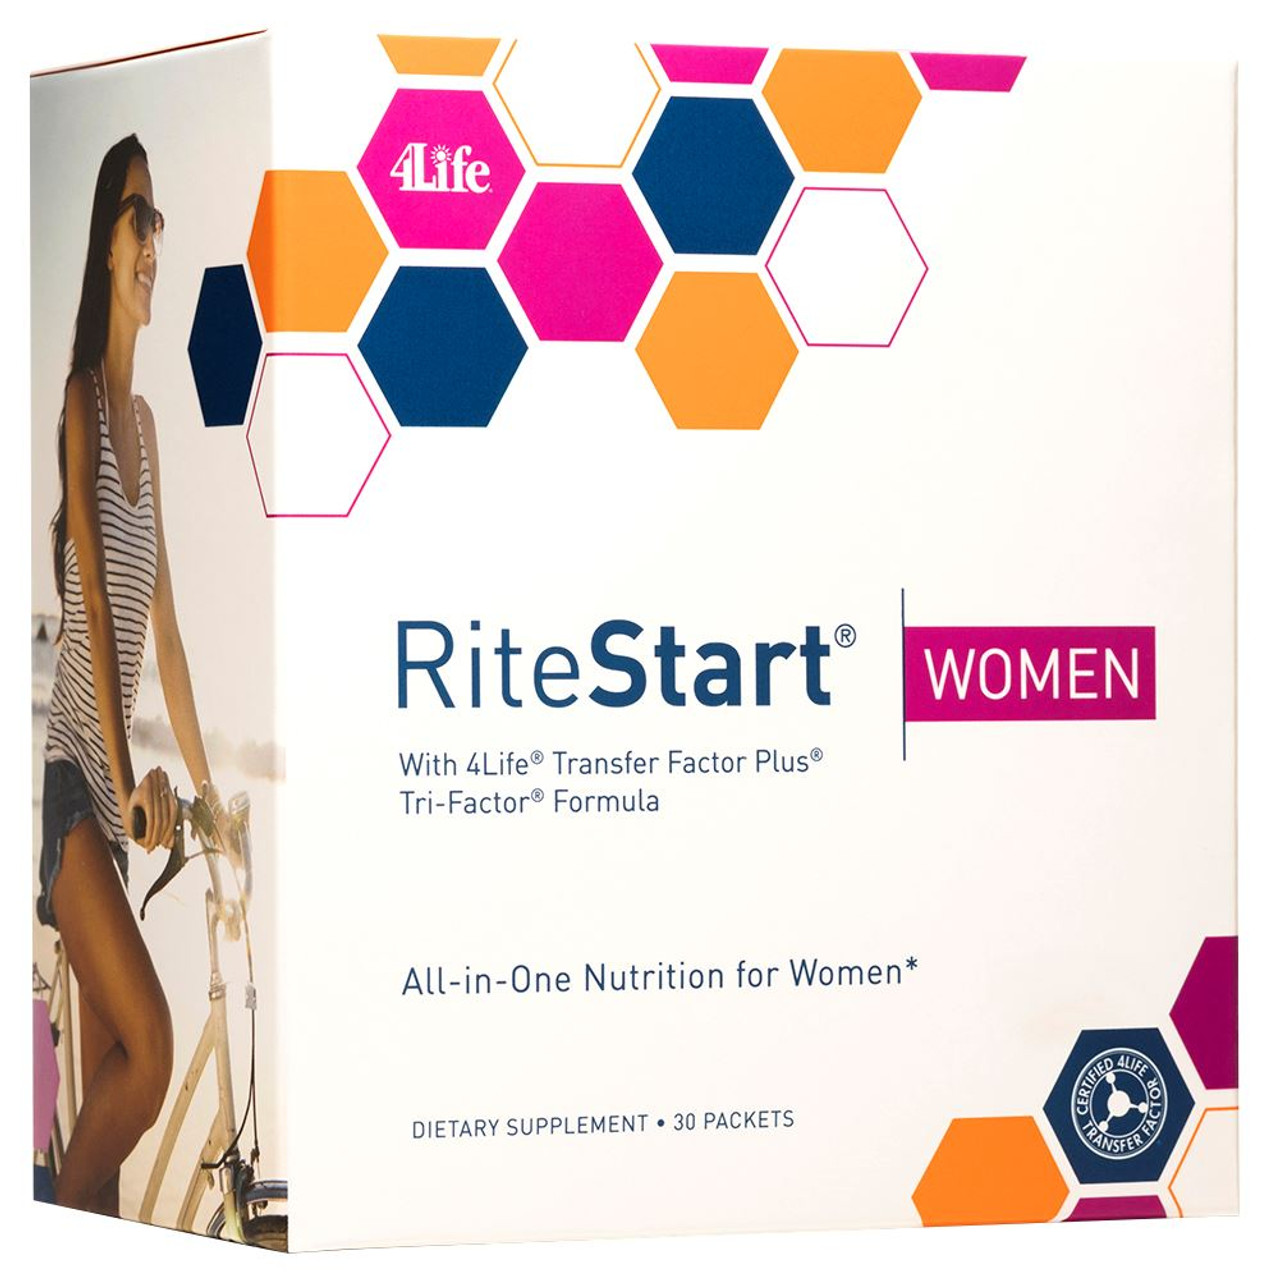 25% Discount RiteStart Women (Plus Shipping)